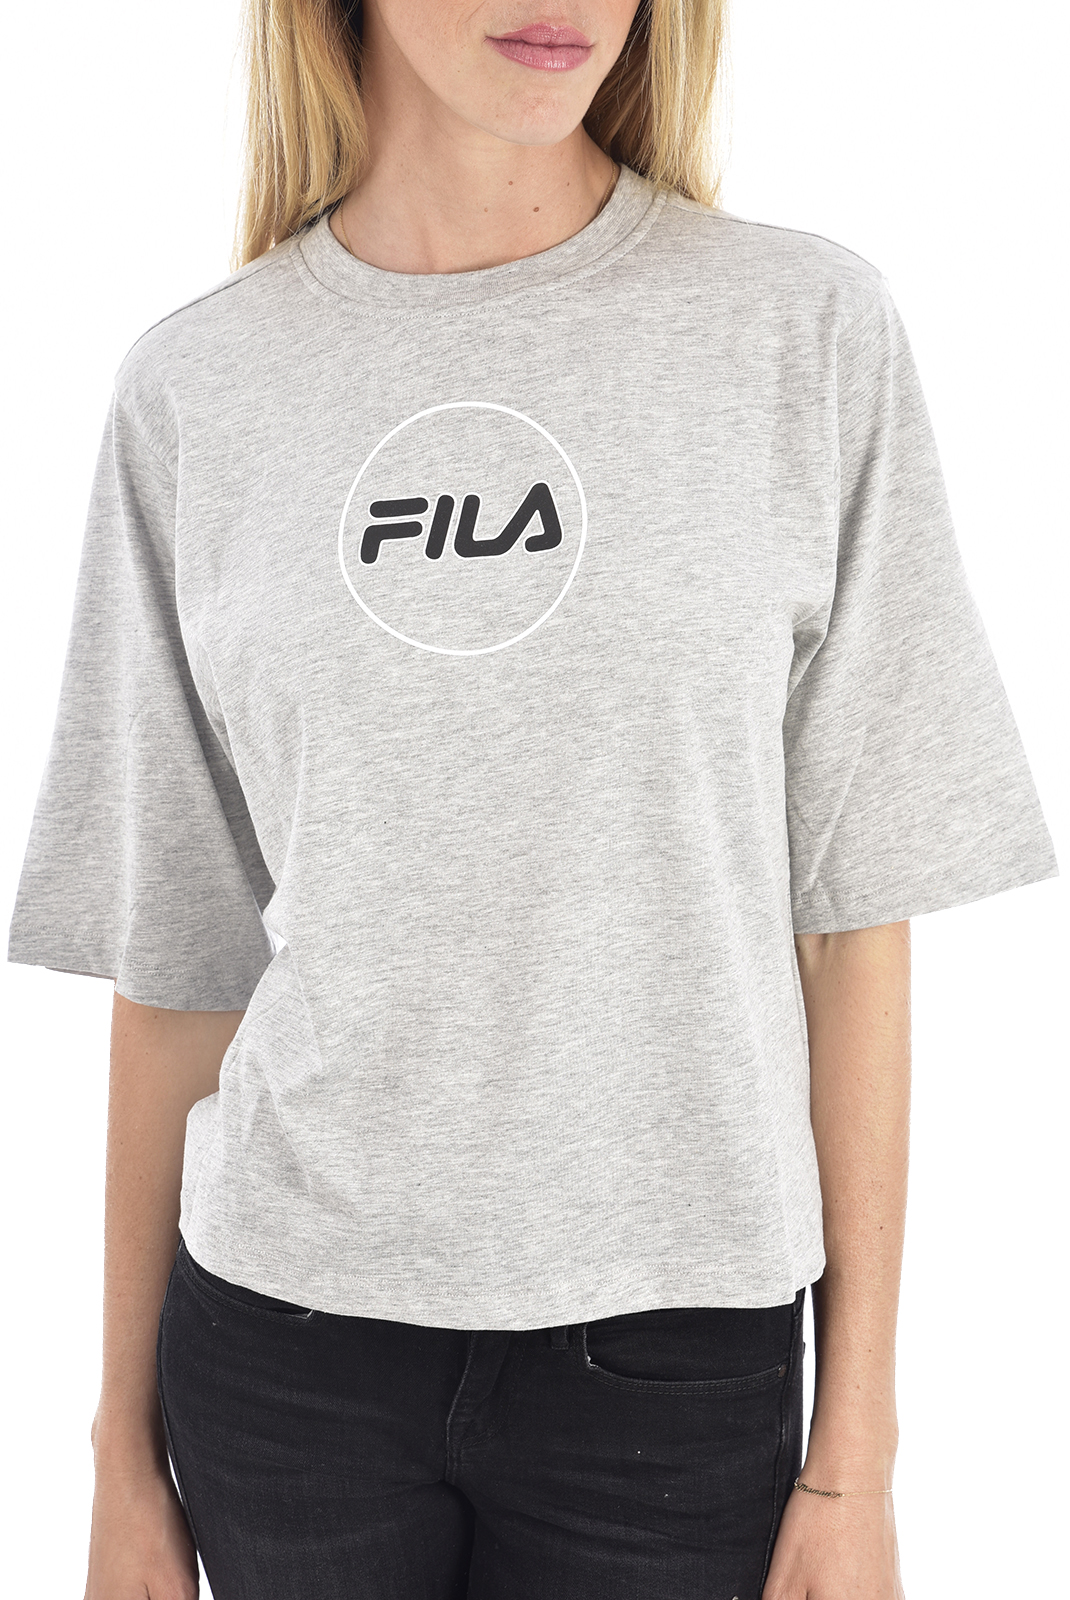 Tee shirt  Fila 682310 B13 light grey melange bros